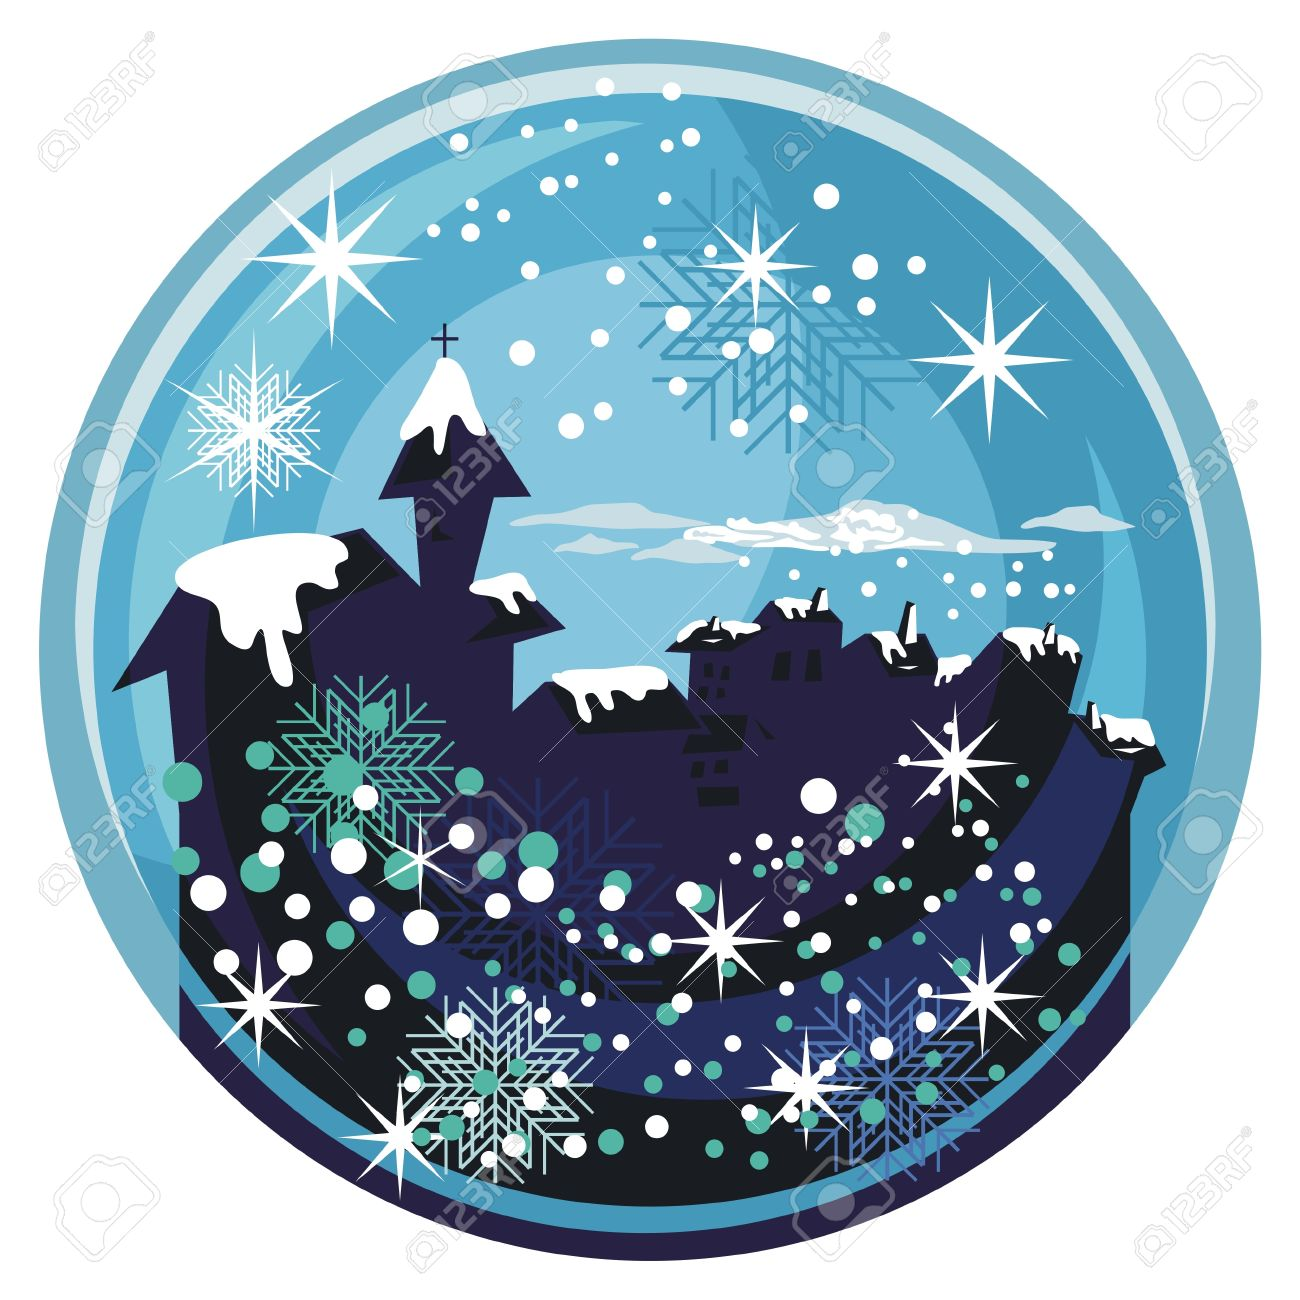 winter snow globe with old town and seasonal elements royalty free